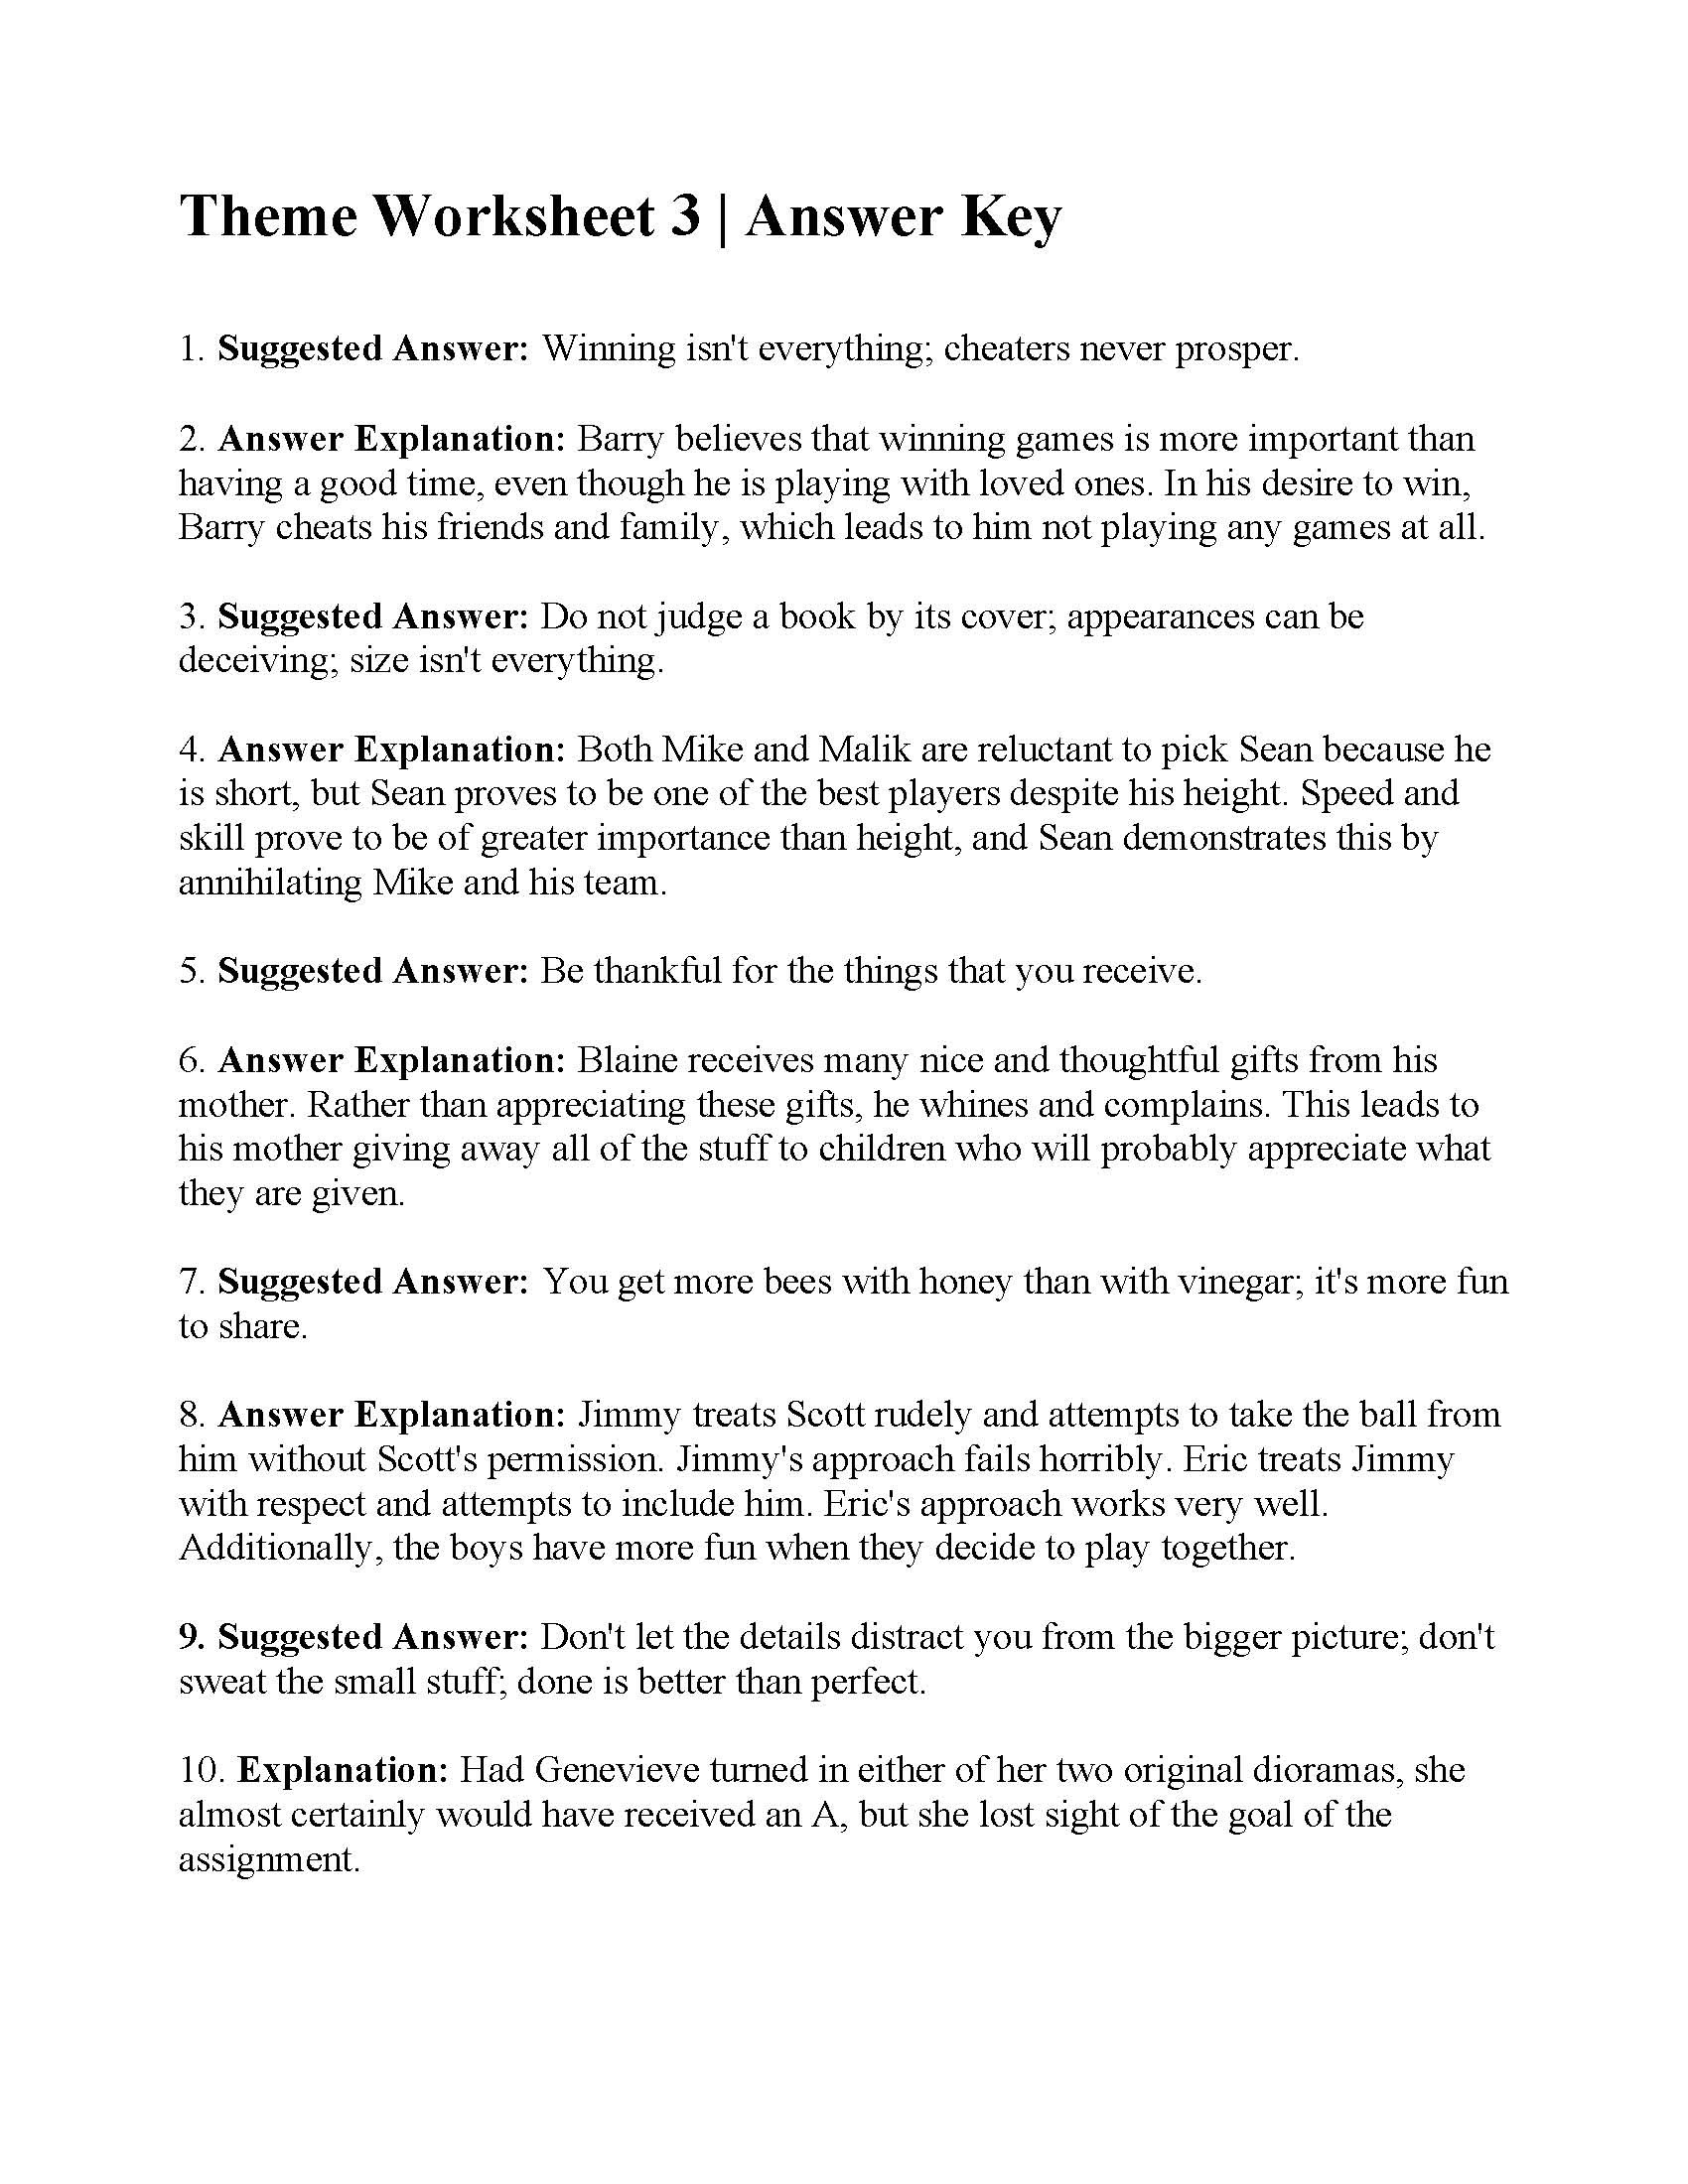 The Story Of Stuff Worksheet theme Worksheet Answers Ereading Worksheets Math Magnets